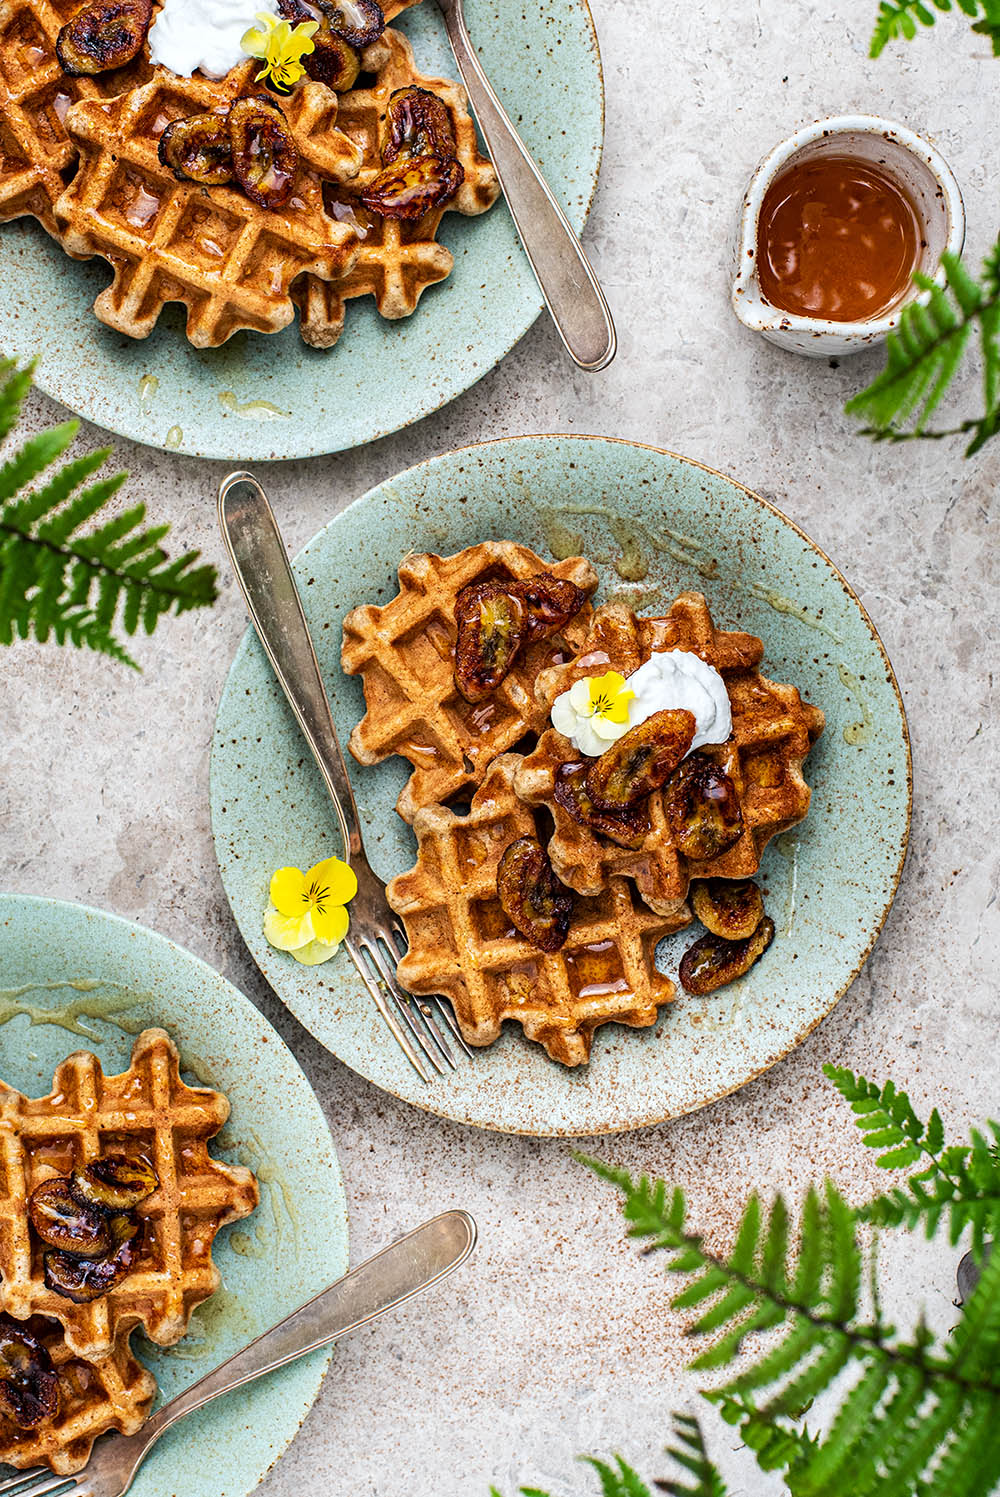 Three plates of waffles with ferns around the edges of the frame.